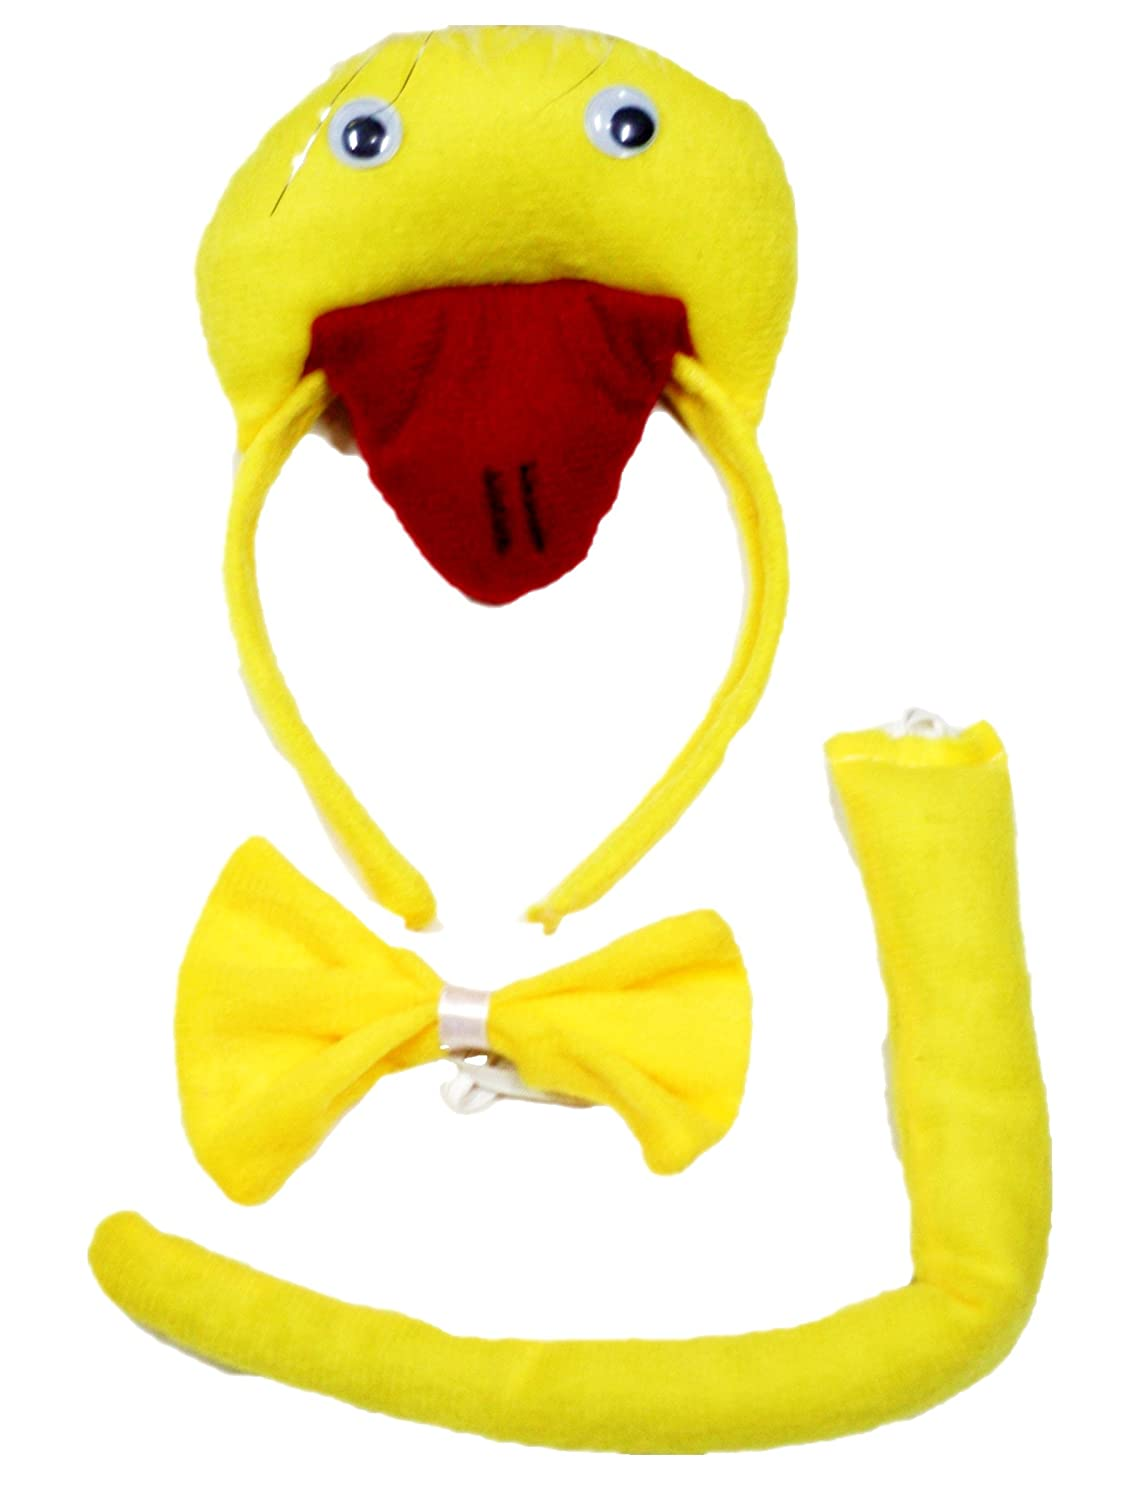 Amazon.com  Yellow Duck Headband Bowtie Tail 3pc Costume for Children  Halloween or Party  Toys   Games 55e0ddbba50